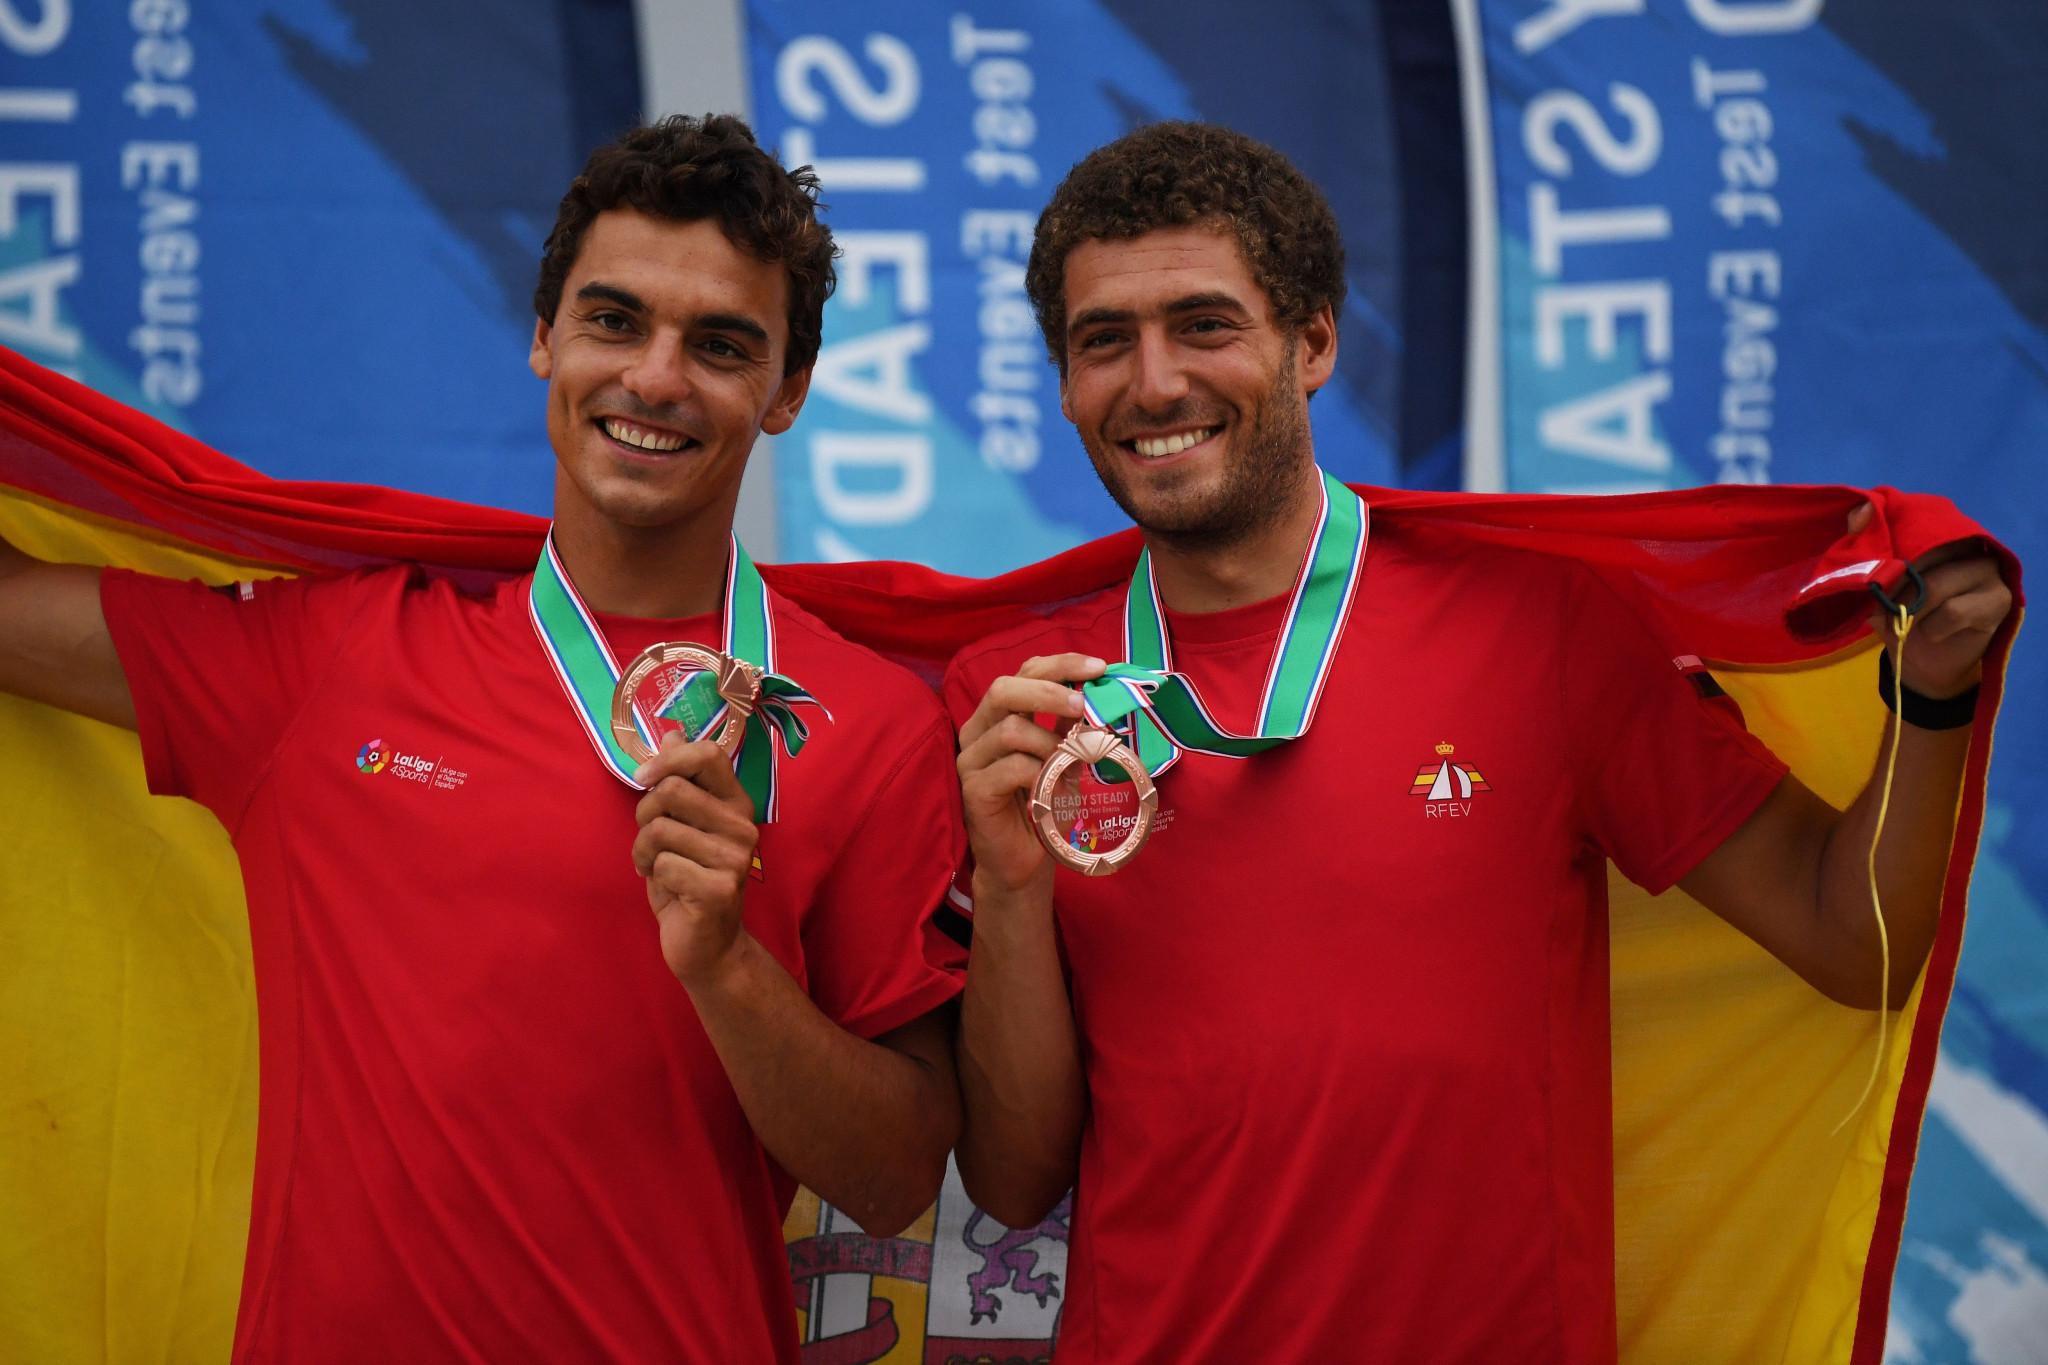 Spain's Jordi Xammar and Nicolás Rodríguez are among the favourites in the men's event at the 470 World Championships ©Getty Images